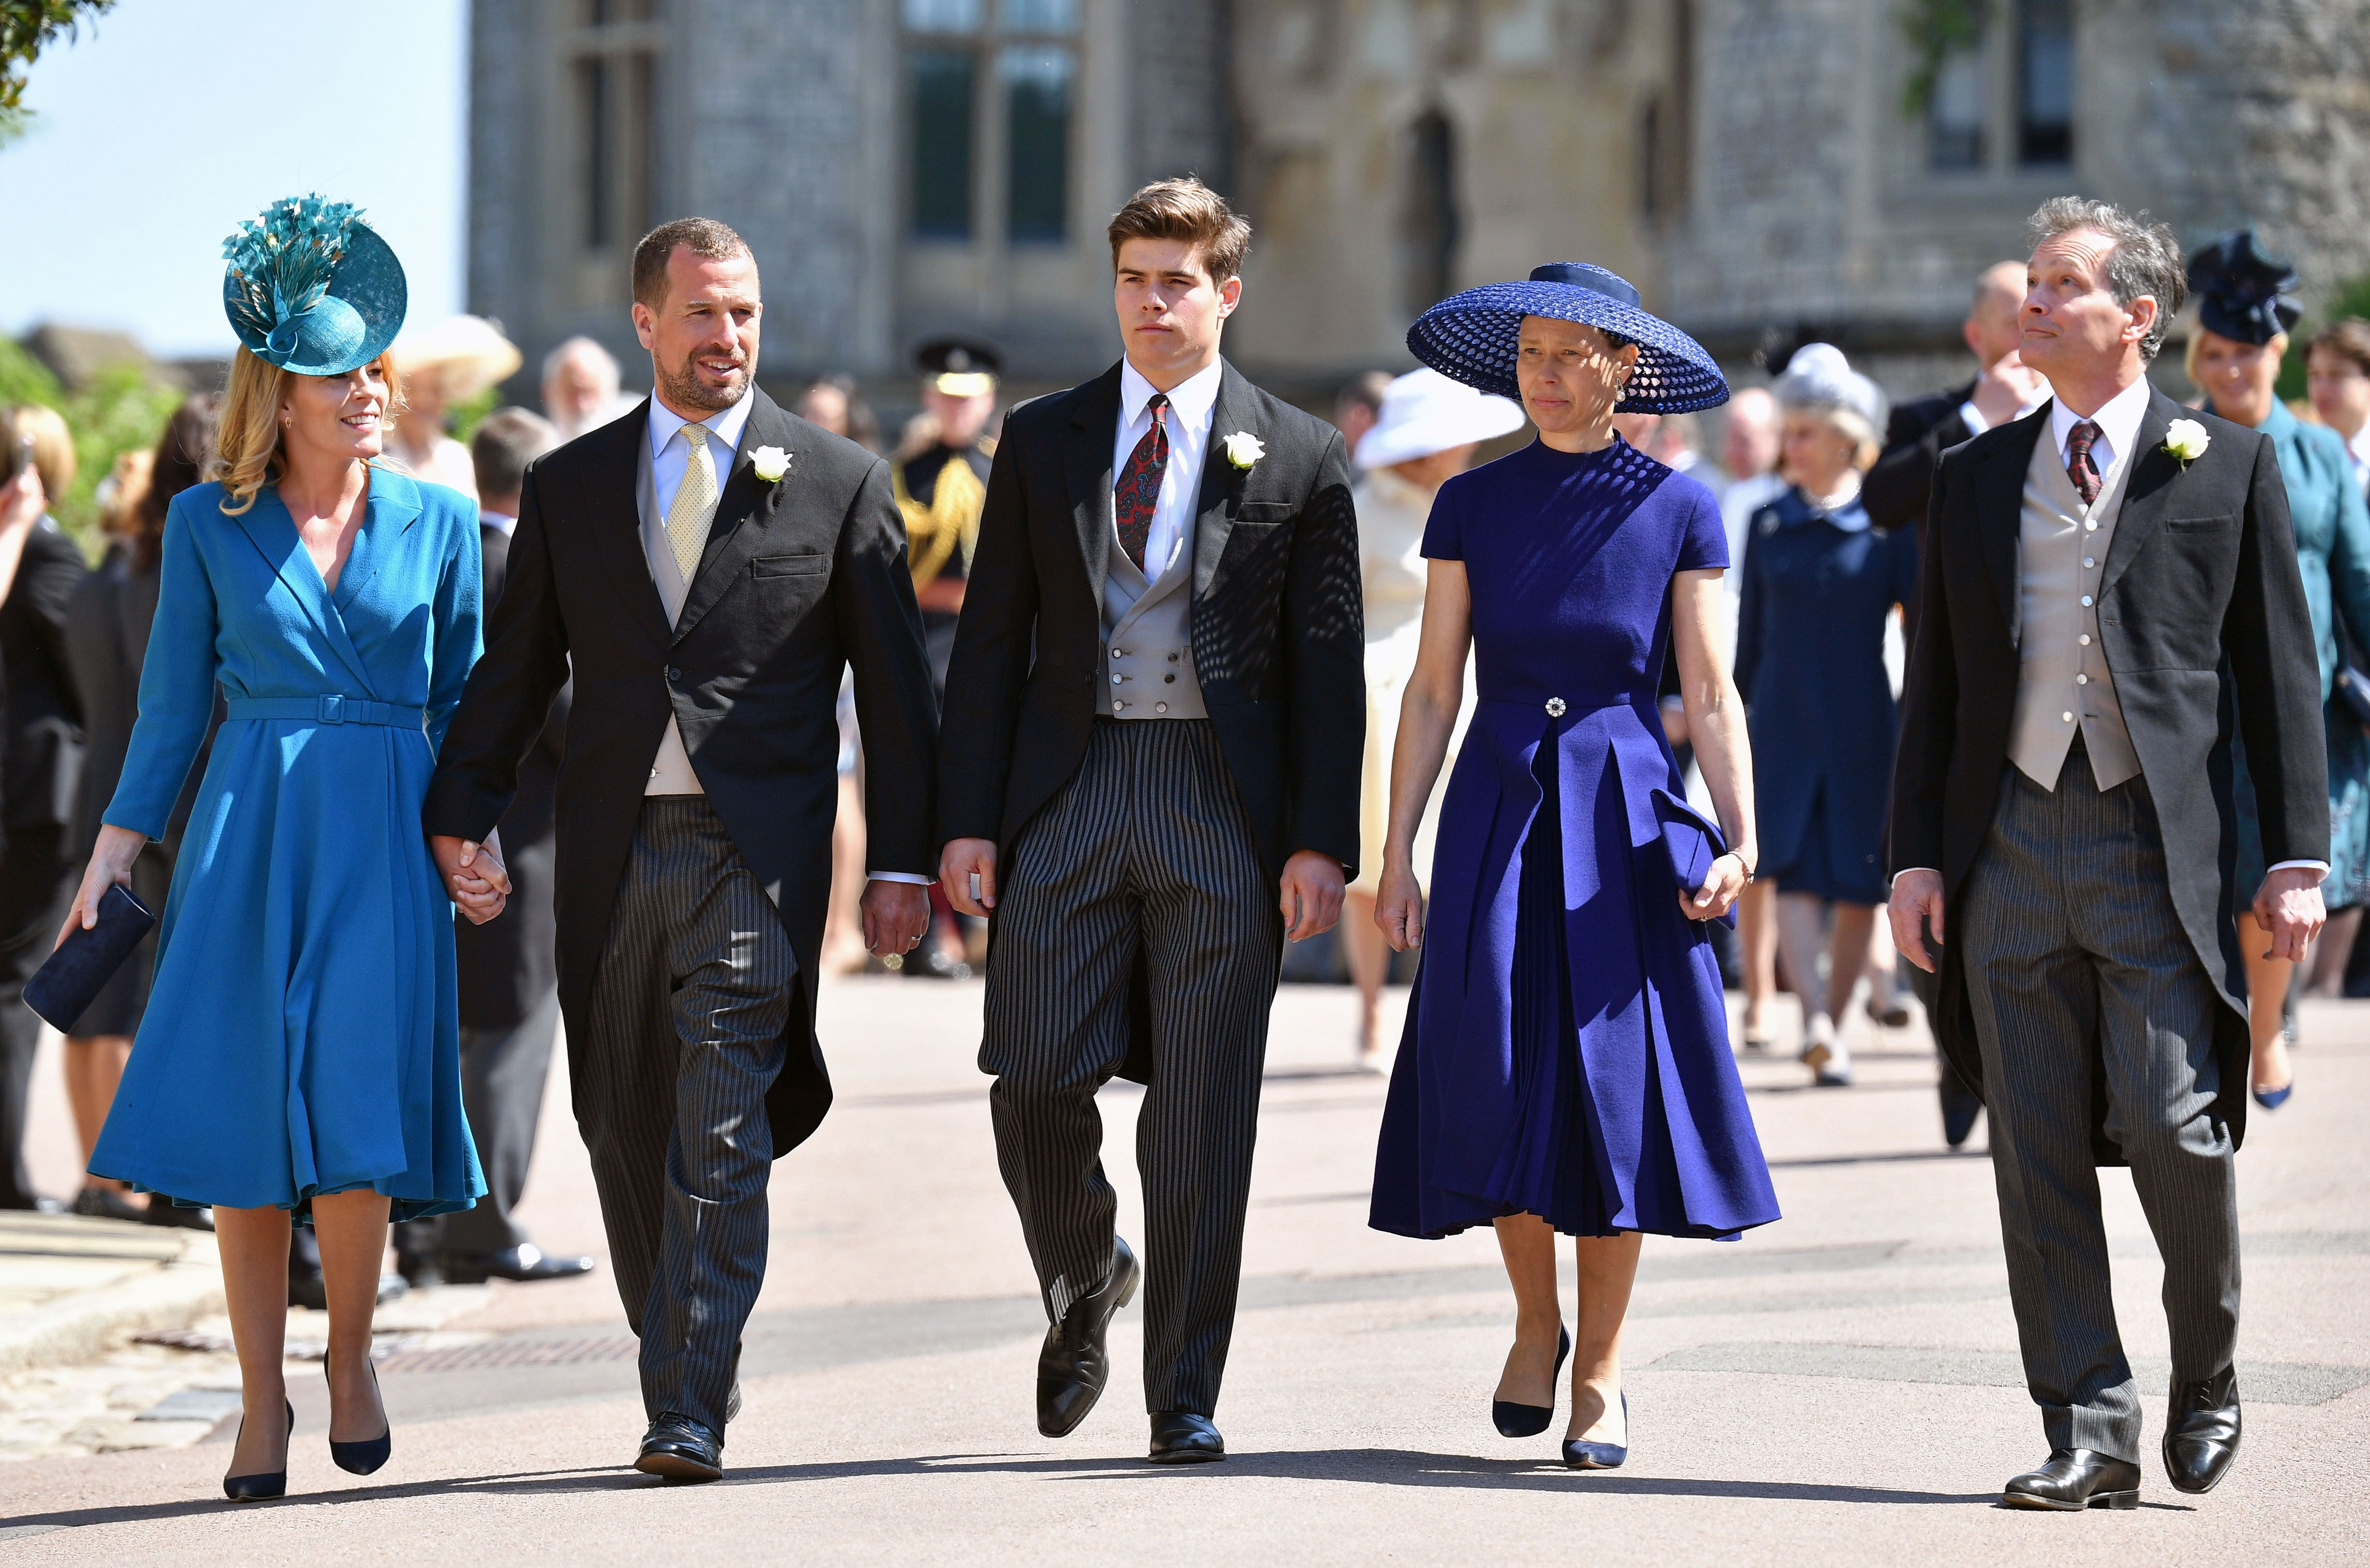 Arthur Chatto, the Queen's Hot Grandnephew, Is the Internet's Latest Royal Obsession